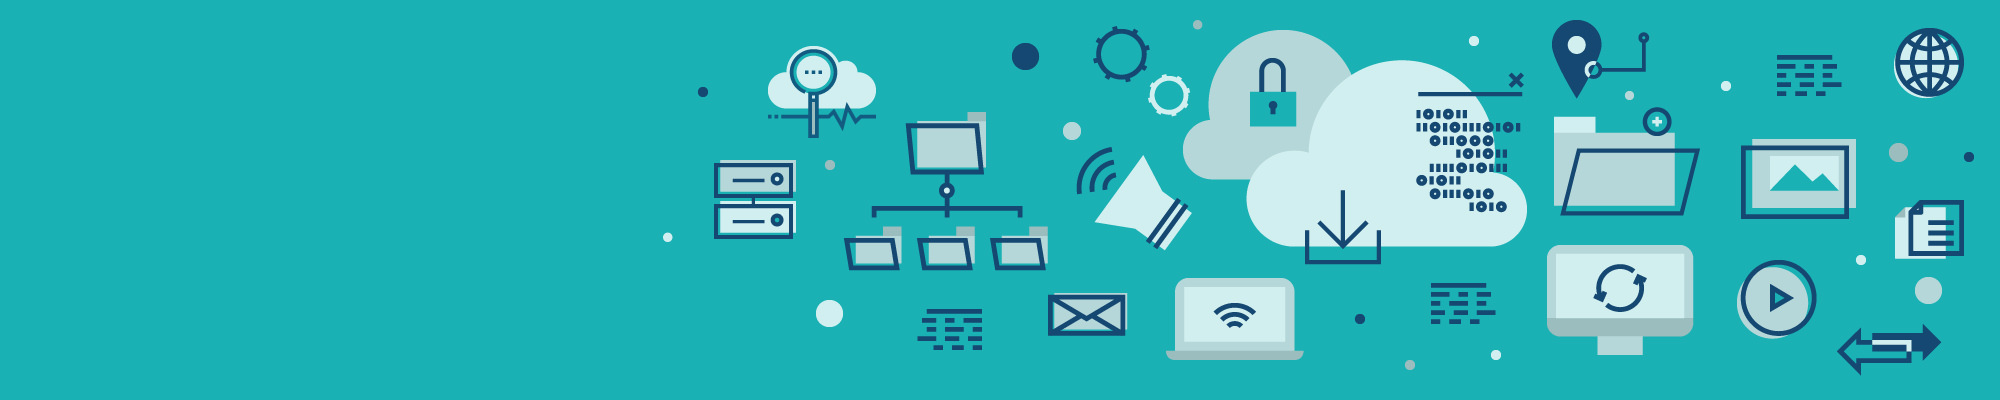 Image of cloud technology icons such as clouds, locks, laptops, servers, computers, data analyzation, data tracking, data filing, among others.